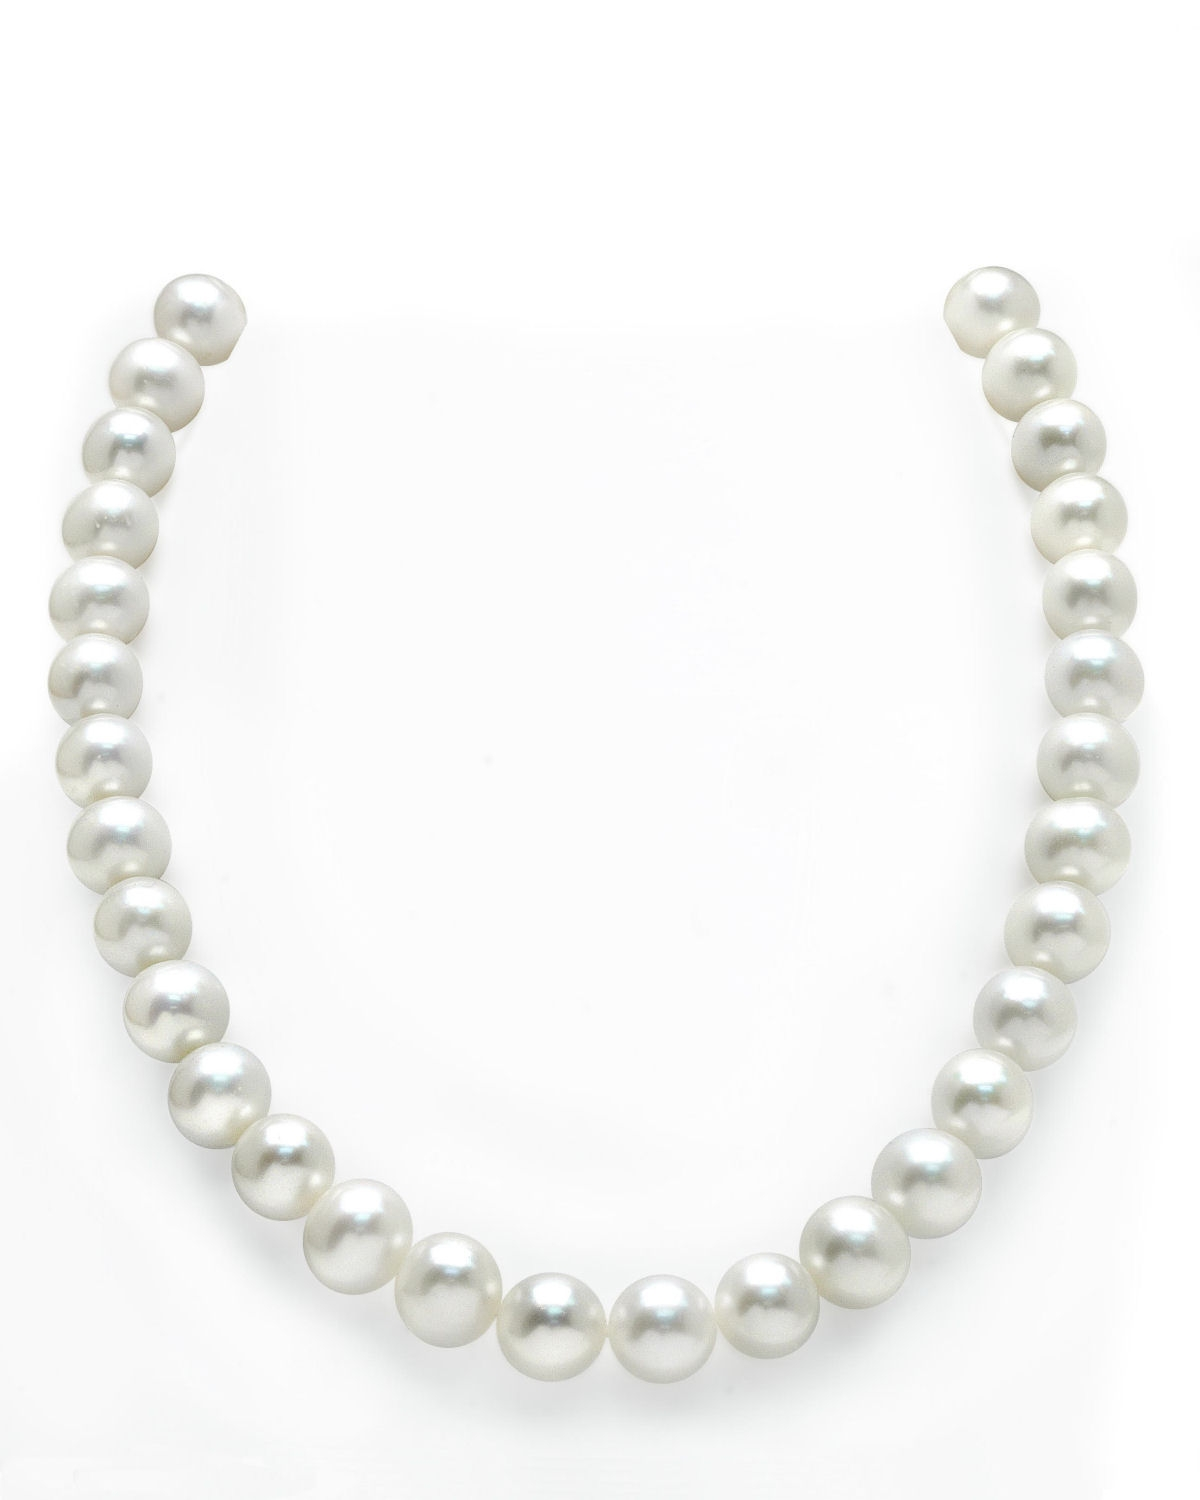 """THE PEARL SOURCE 14K Gold 11-12mm AAAA Quality White Freshwater Cultured Pearl Necklace for Women in 18"""" Princess... by The Pearl Source"""